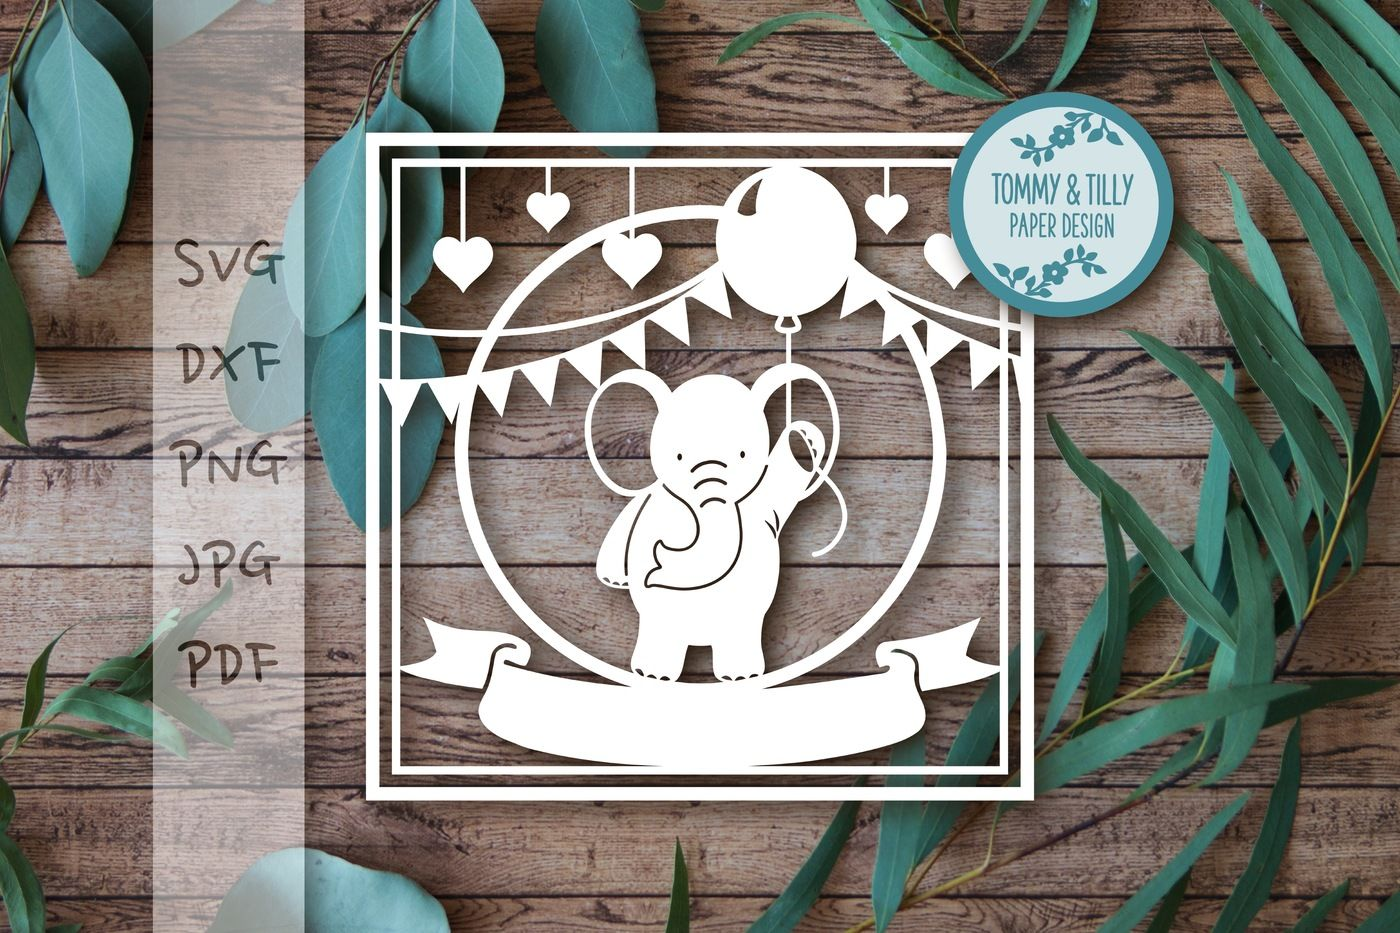 Square Elephant X 2 Svg Dxf Png Pdf Jpg By Tommy And Tilly Design